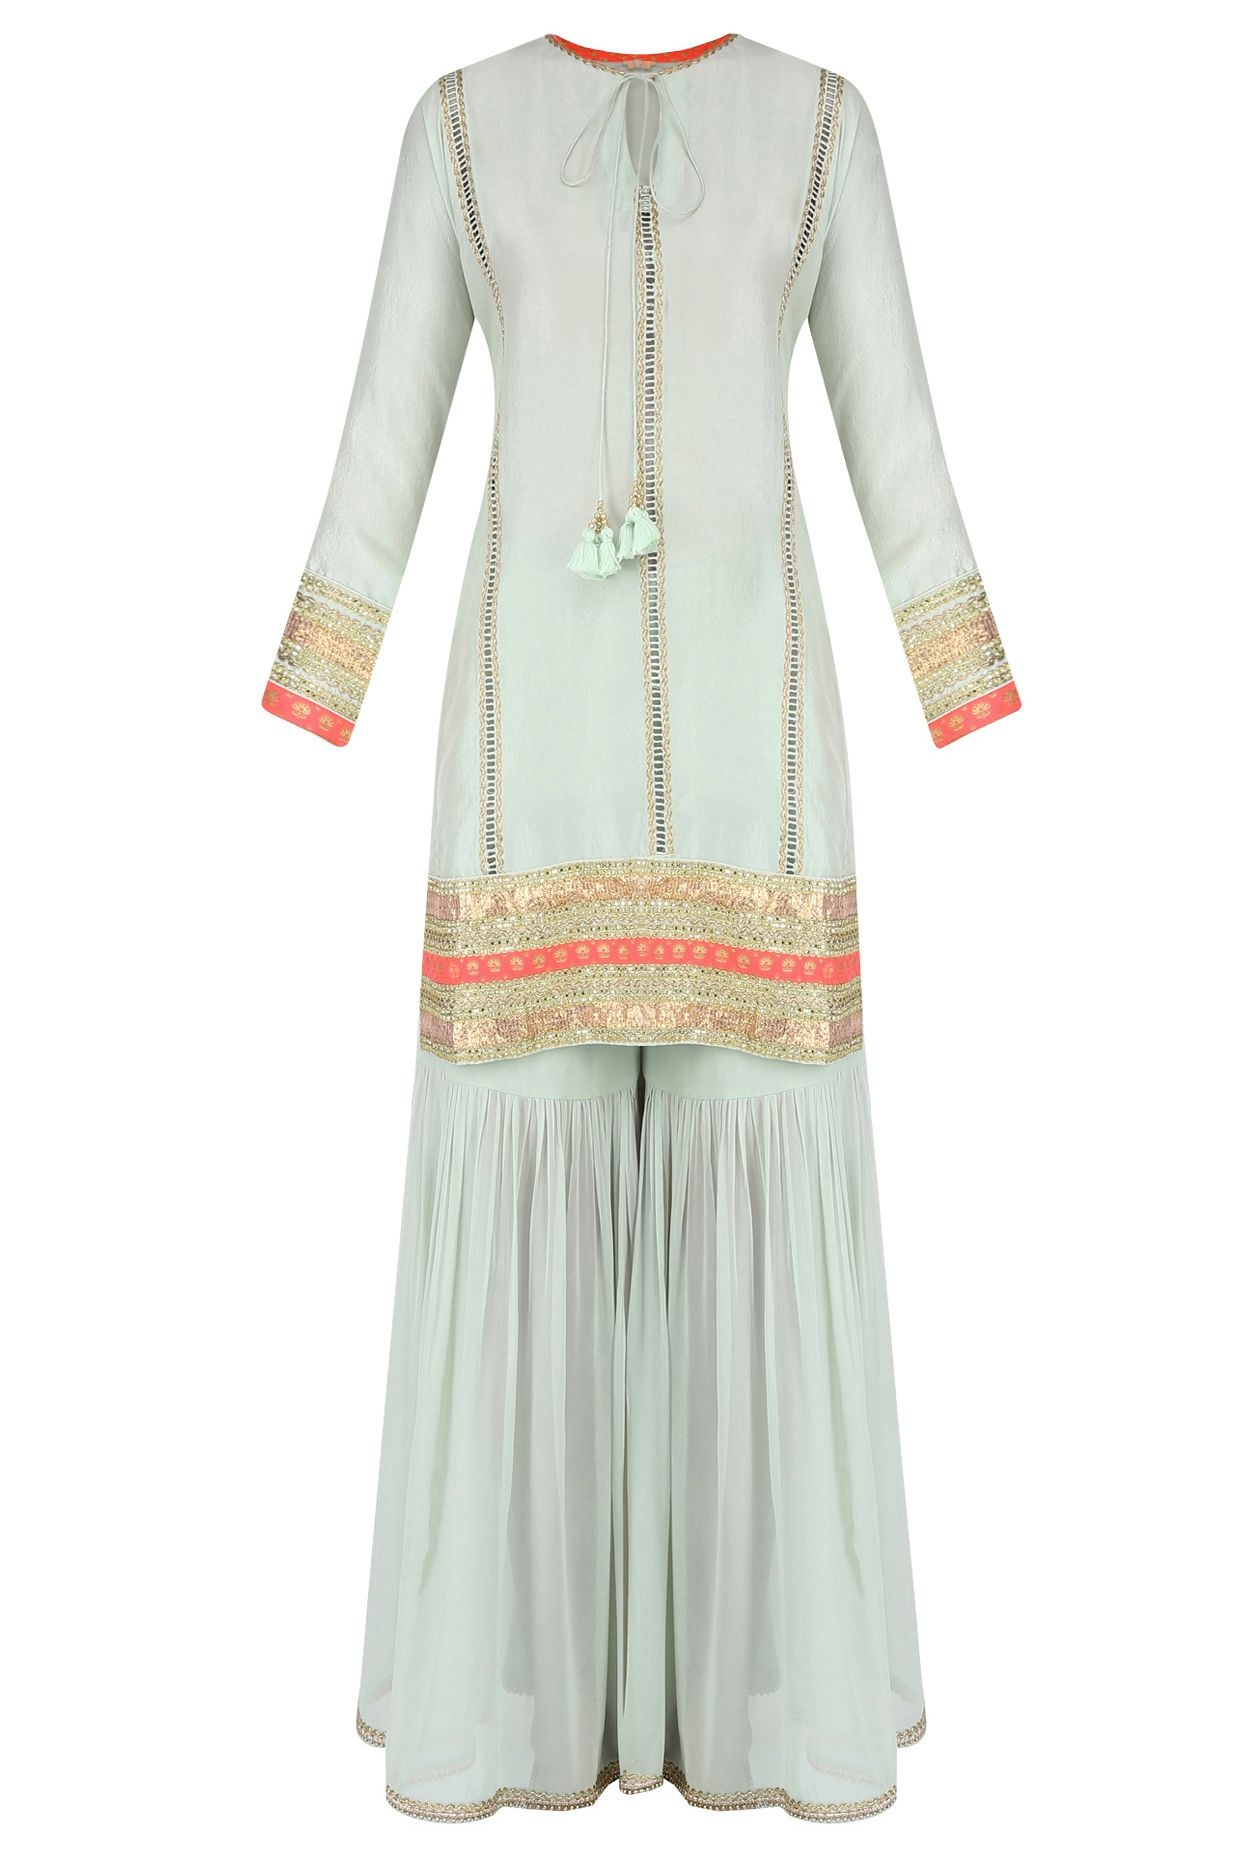 0d885d5ca7 Mint ladder lace kurta with gathered sharara and printed dupatta available  only at Pernia's Pop Up Shop.